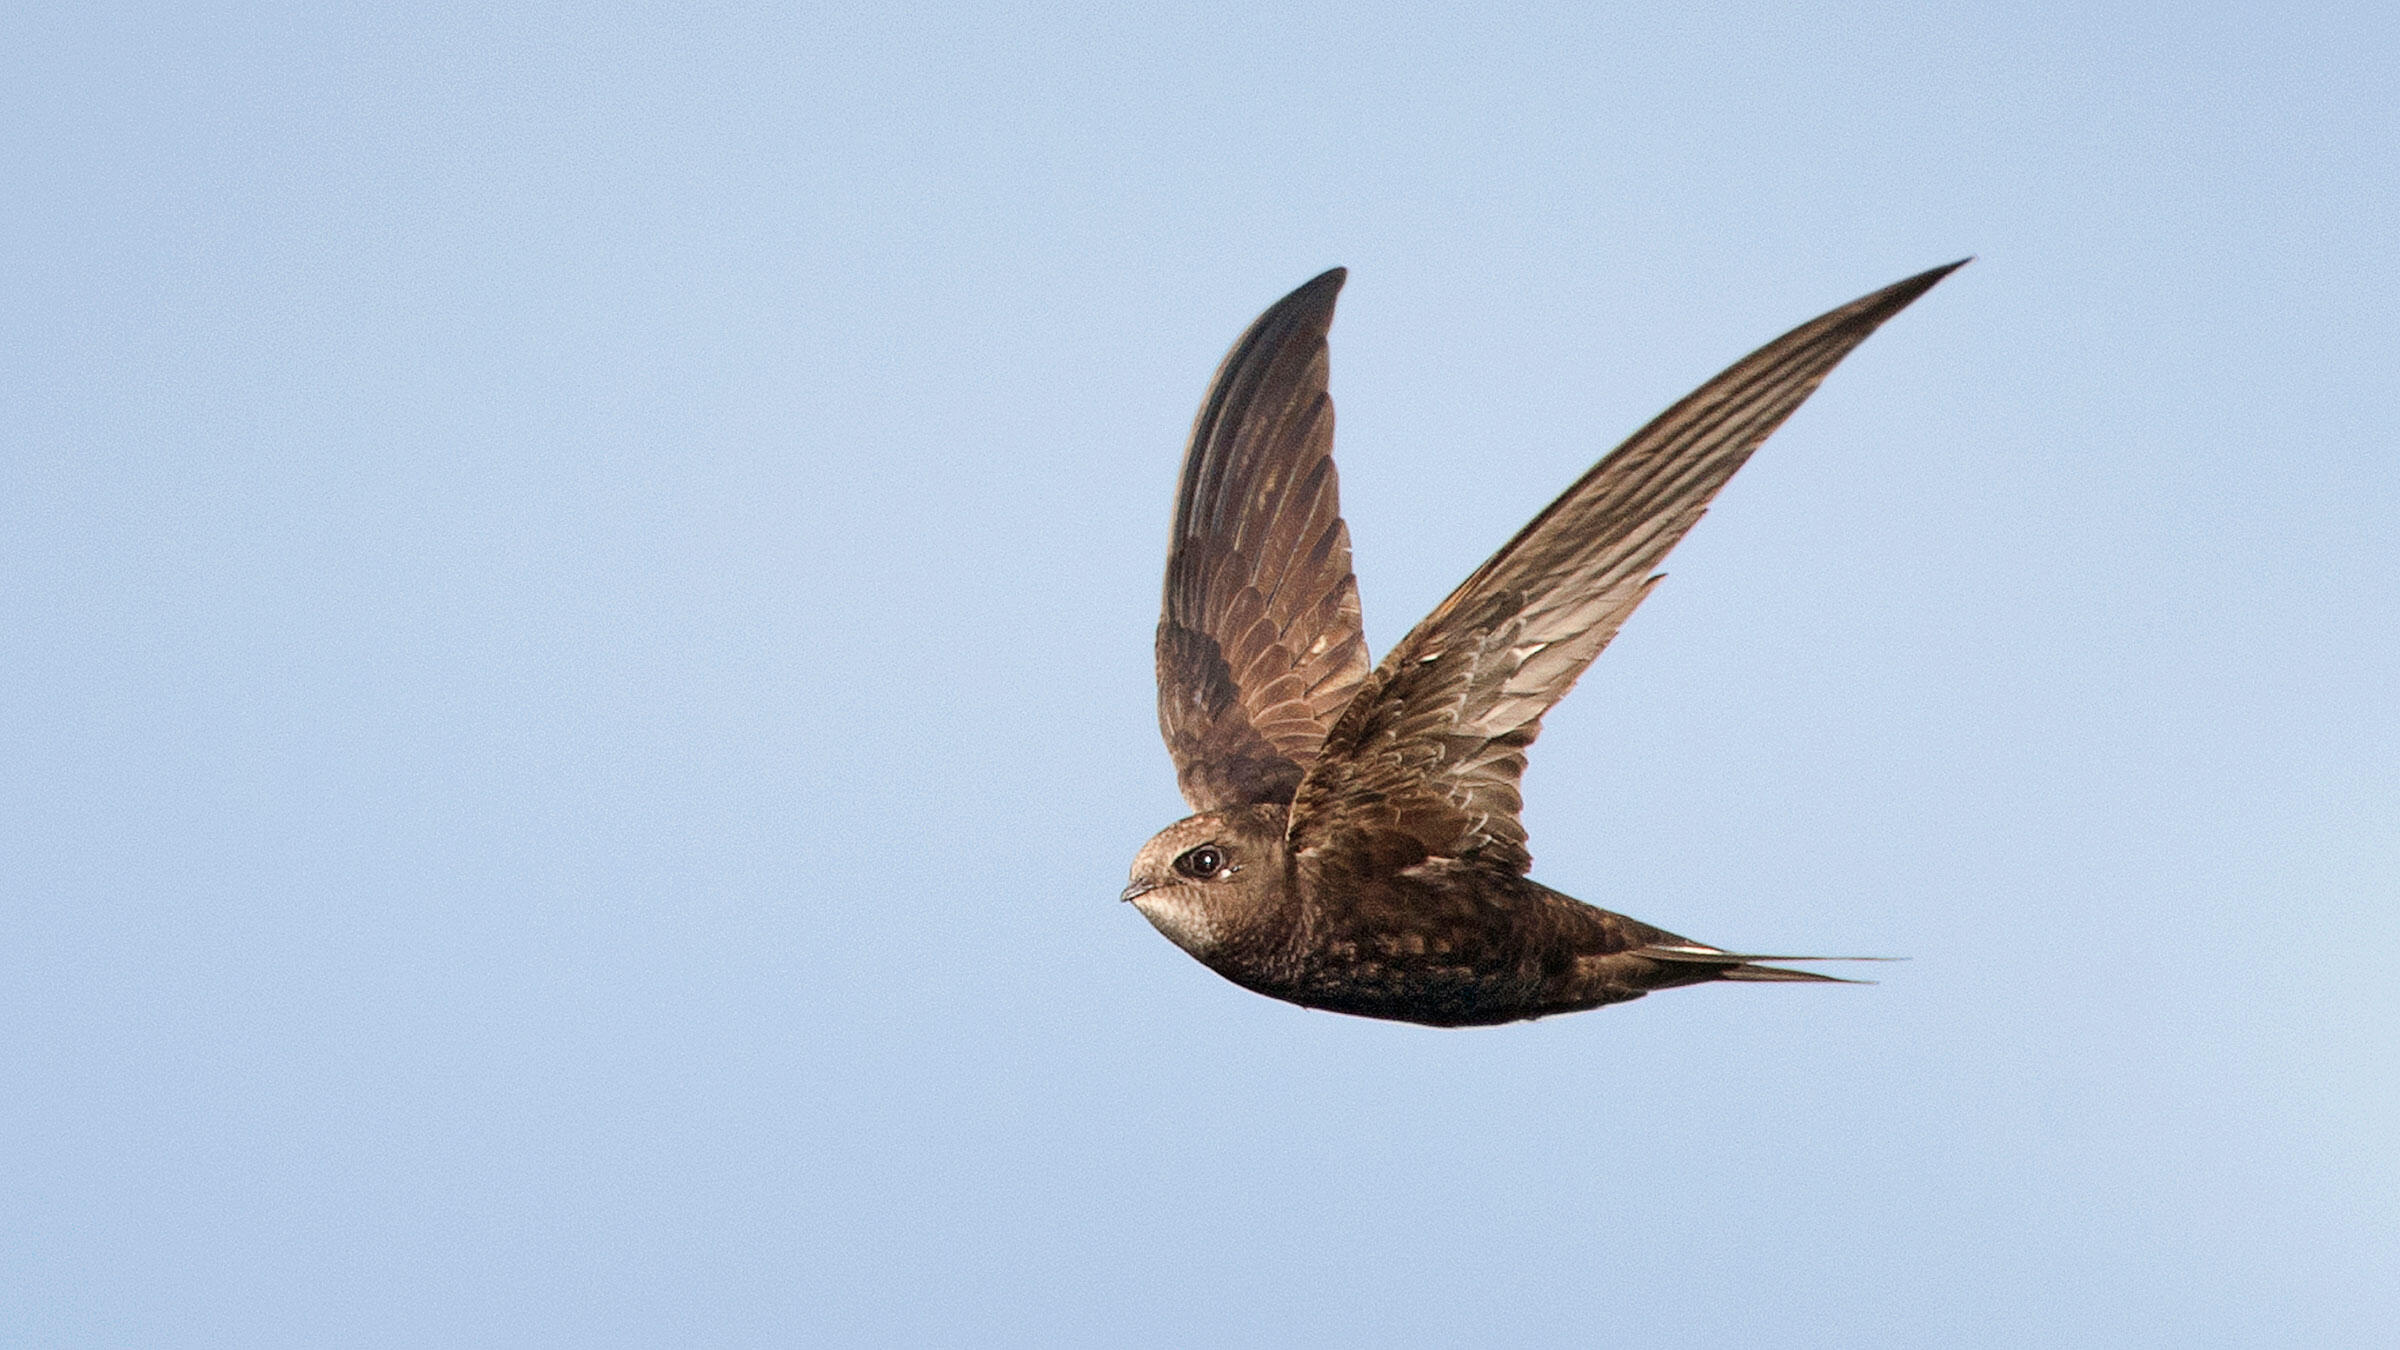 the common swift is